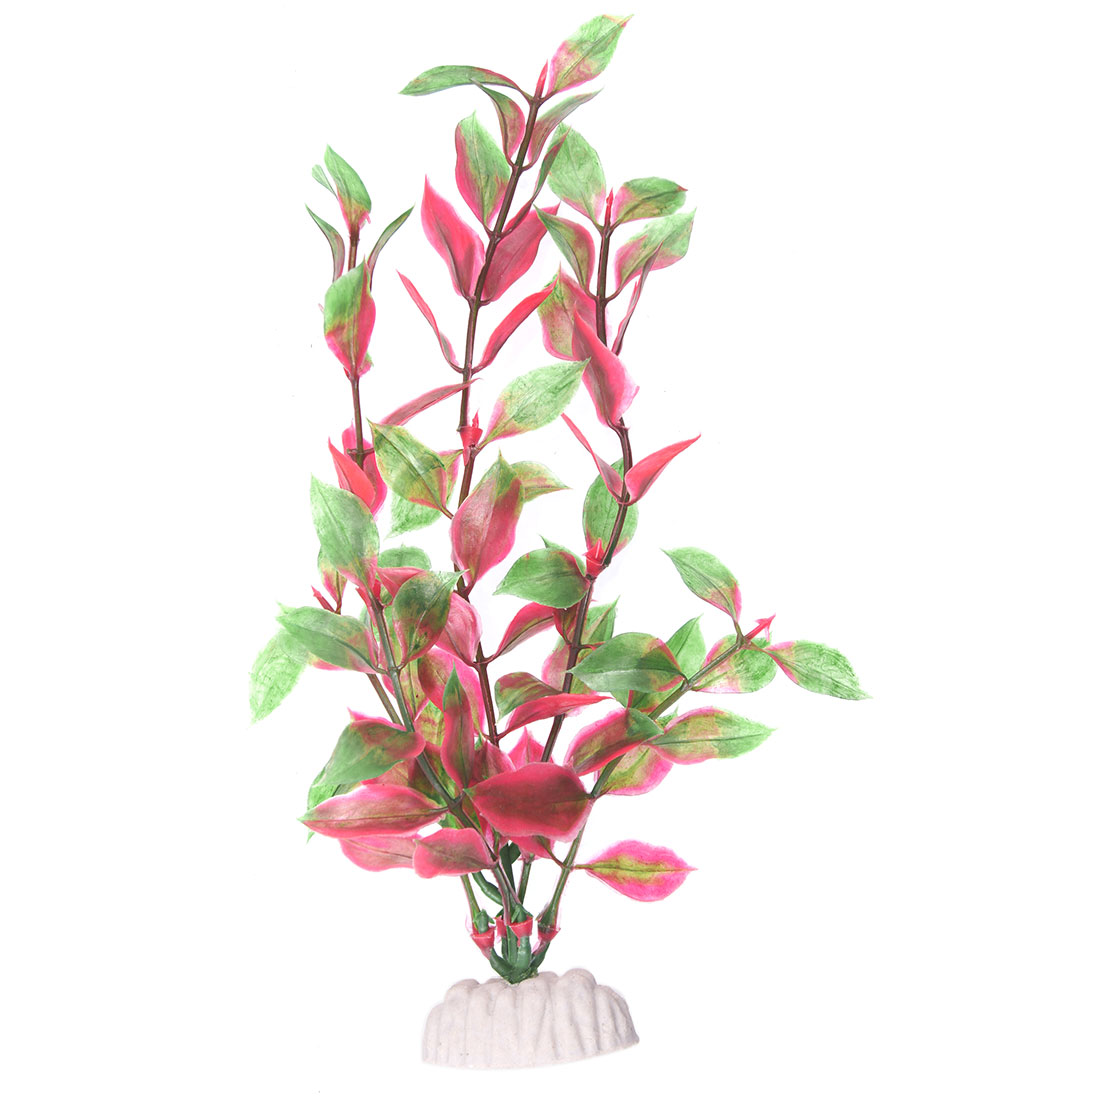 9-Green-Red-Plastic-Leaf-Plants-for-Aquarium-Fish-Tank